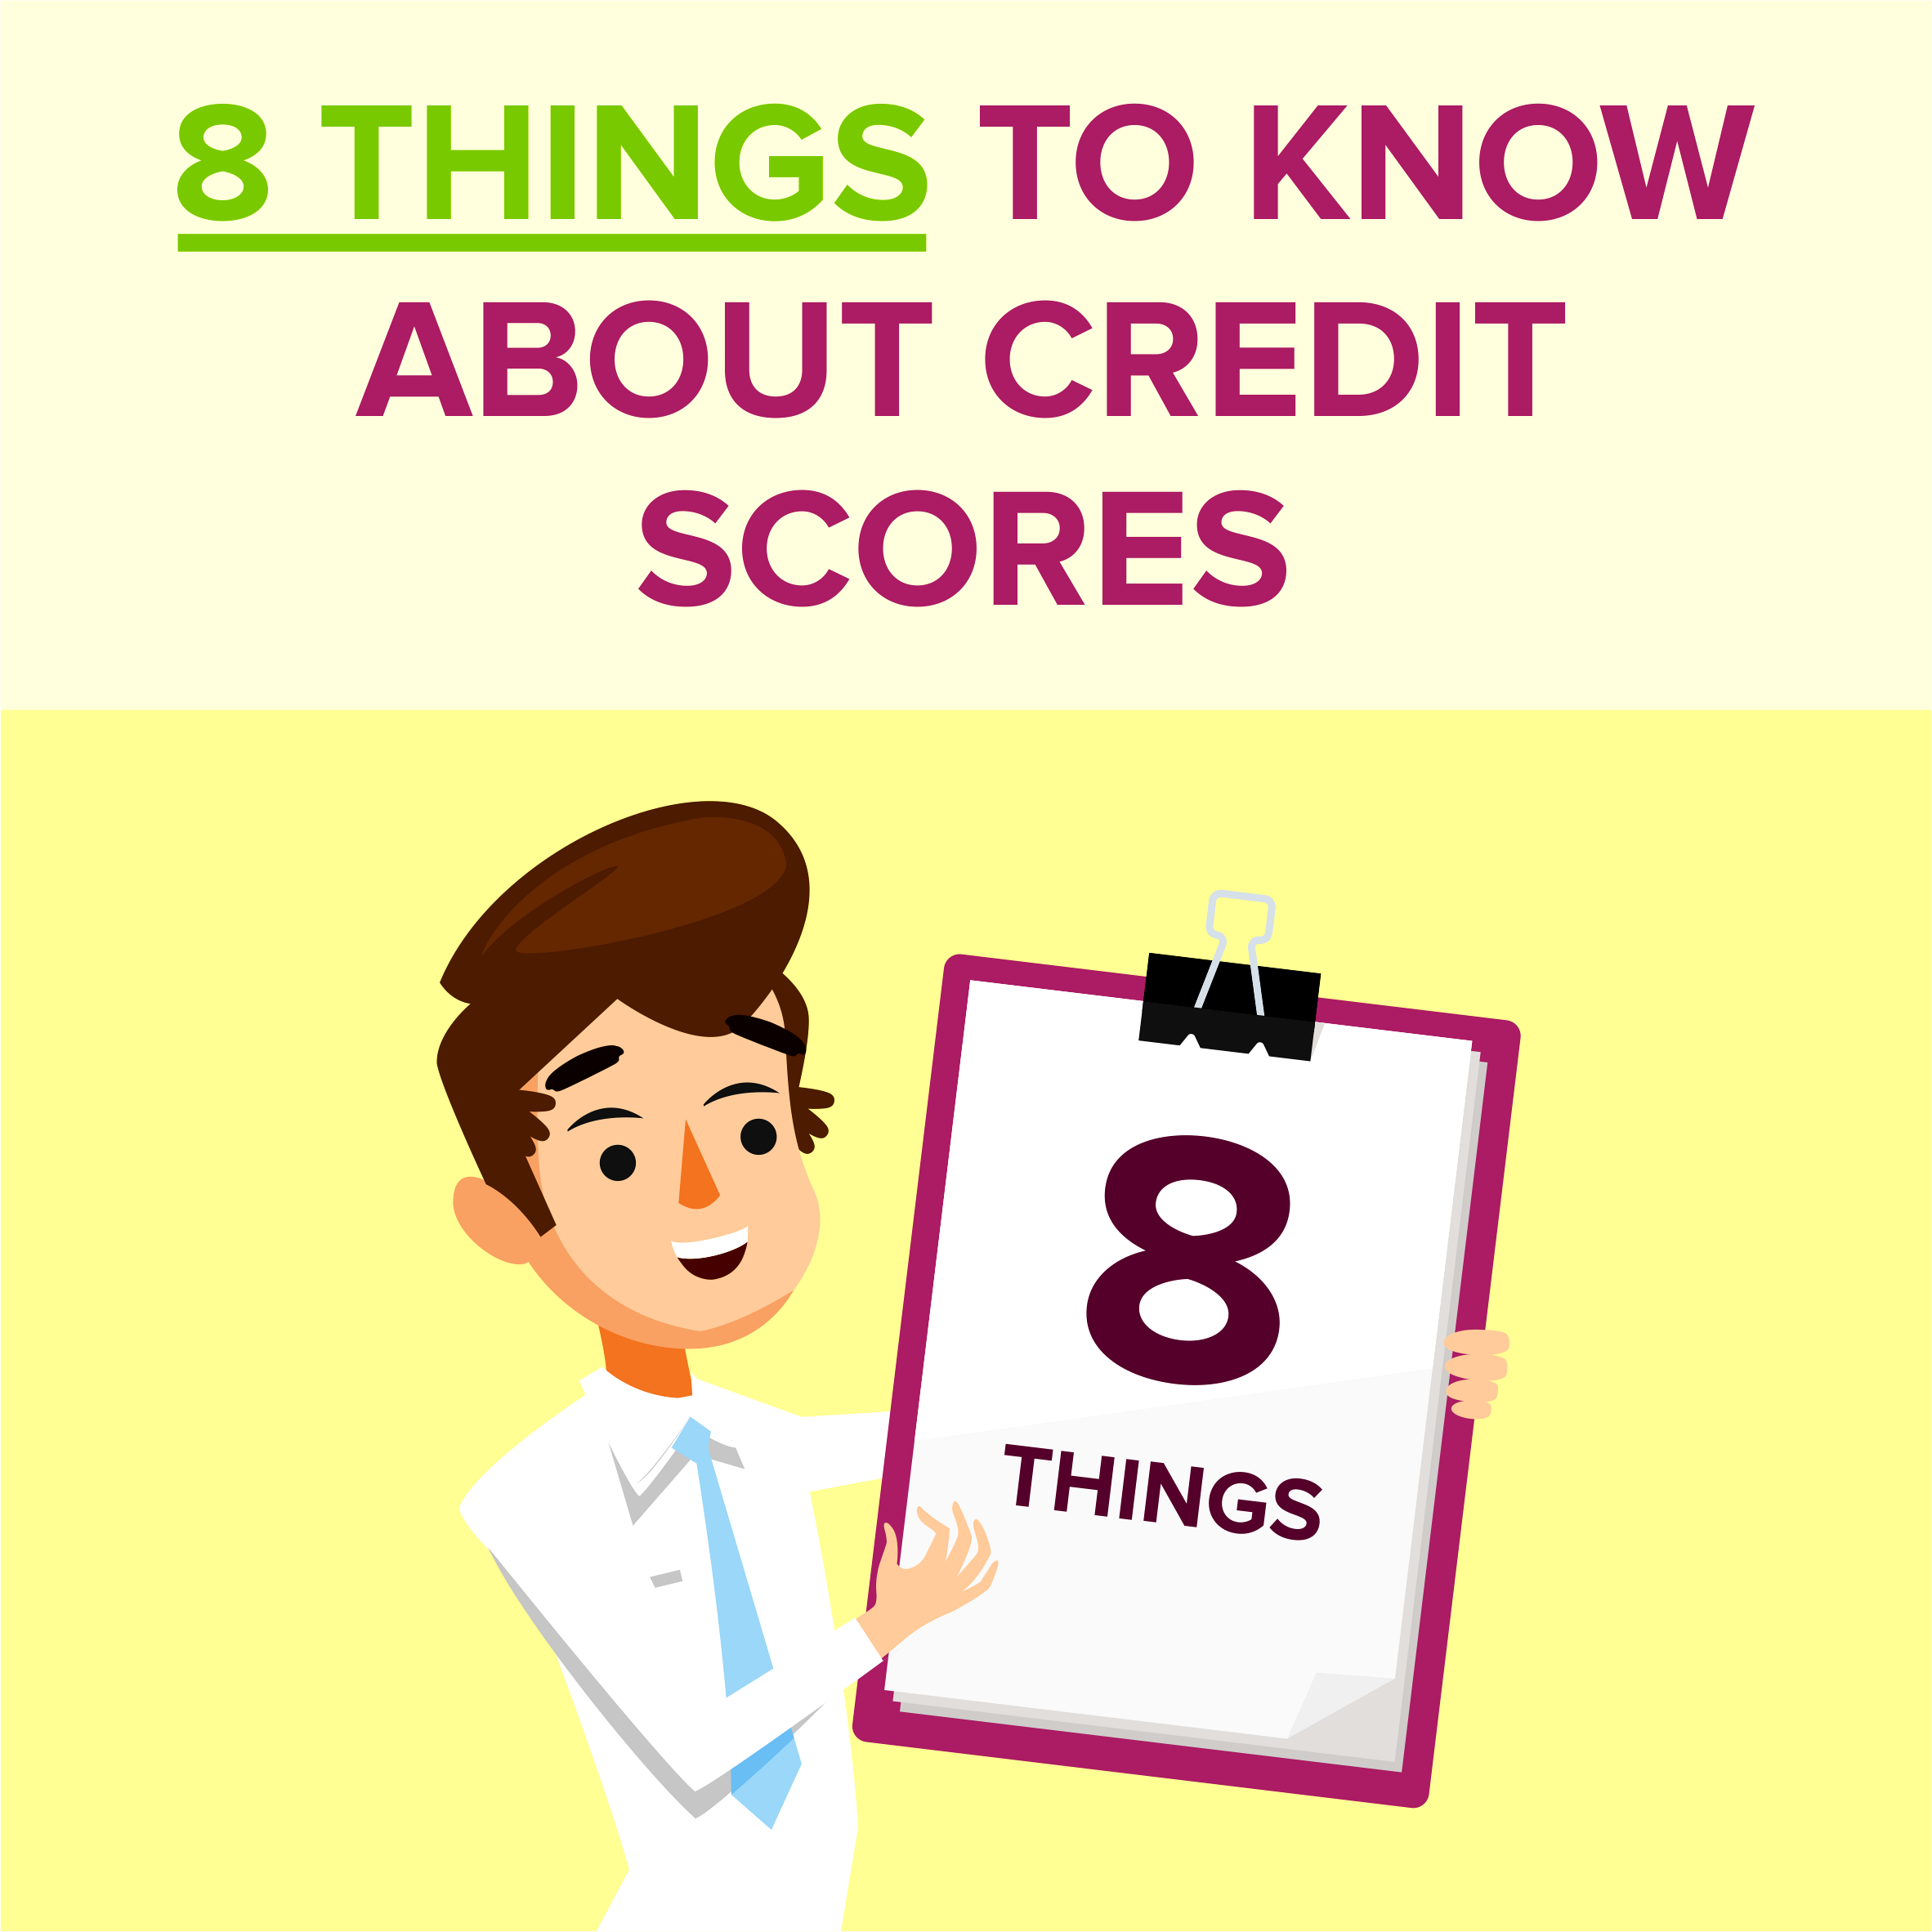 8 Things to Know About Credit Scores